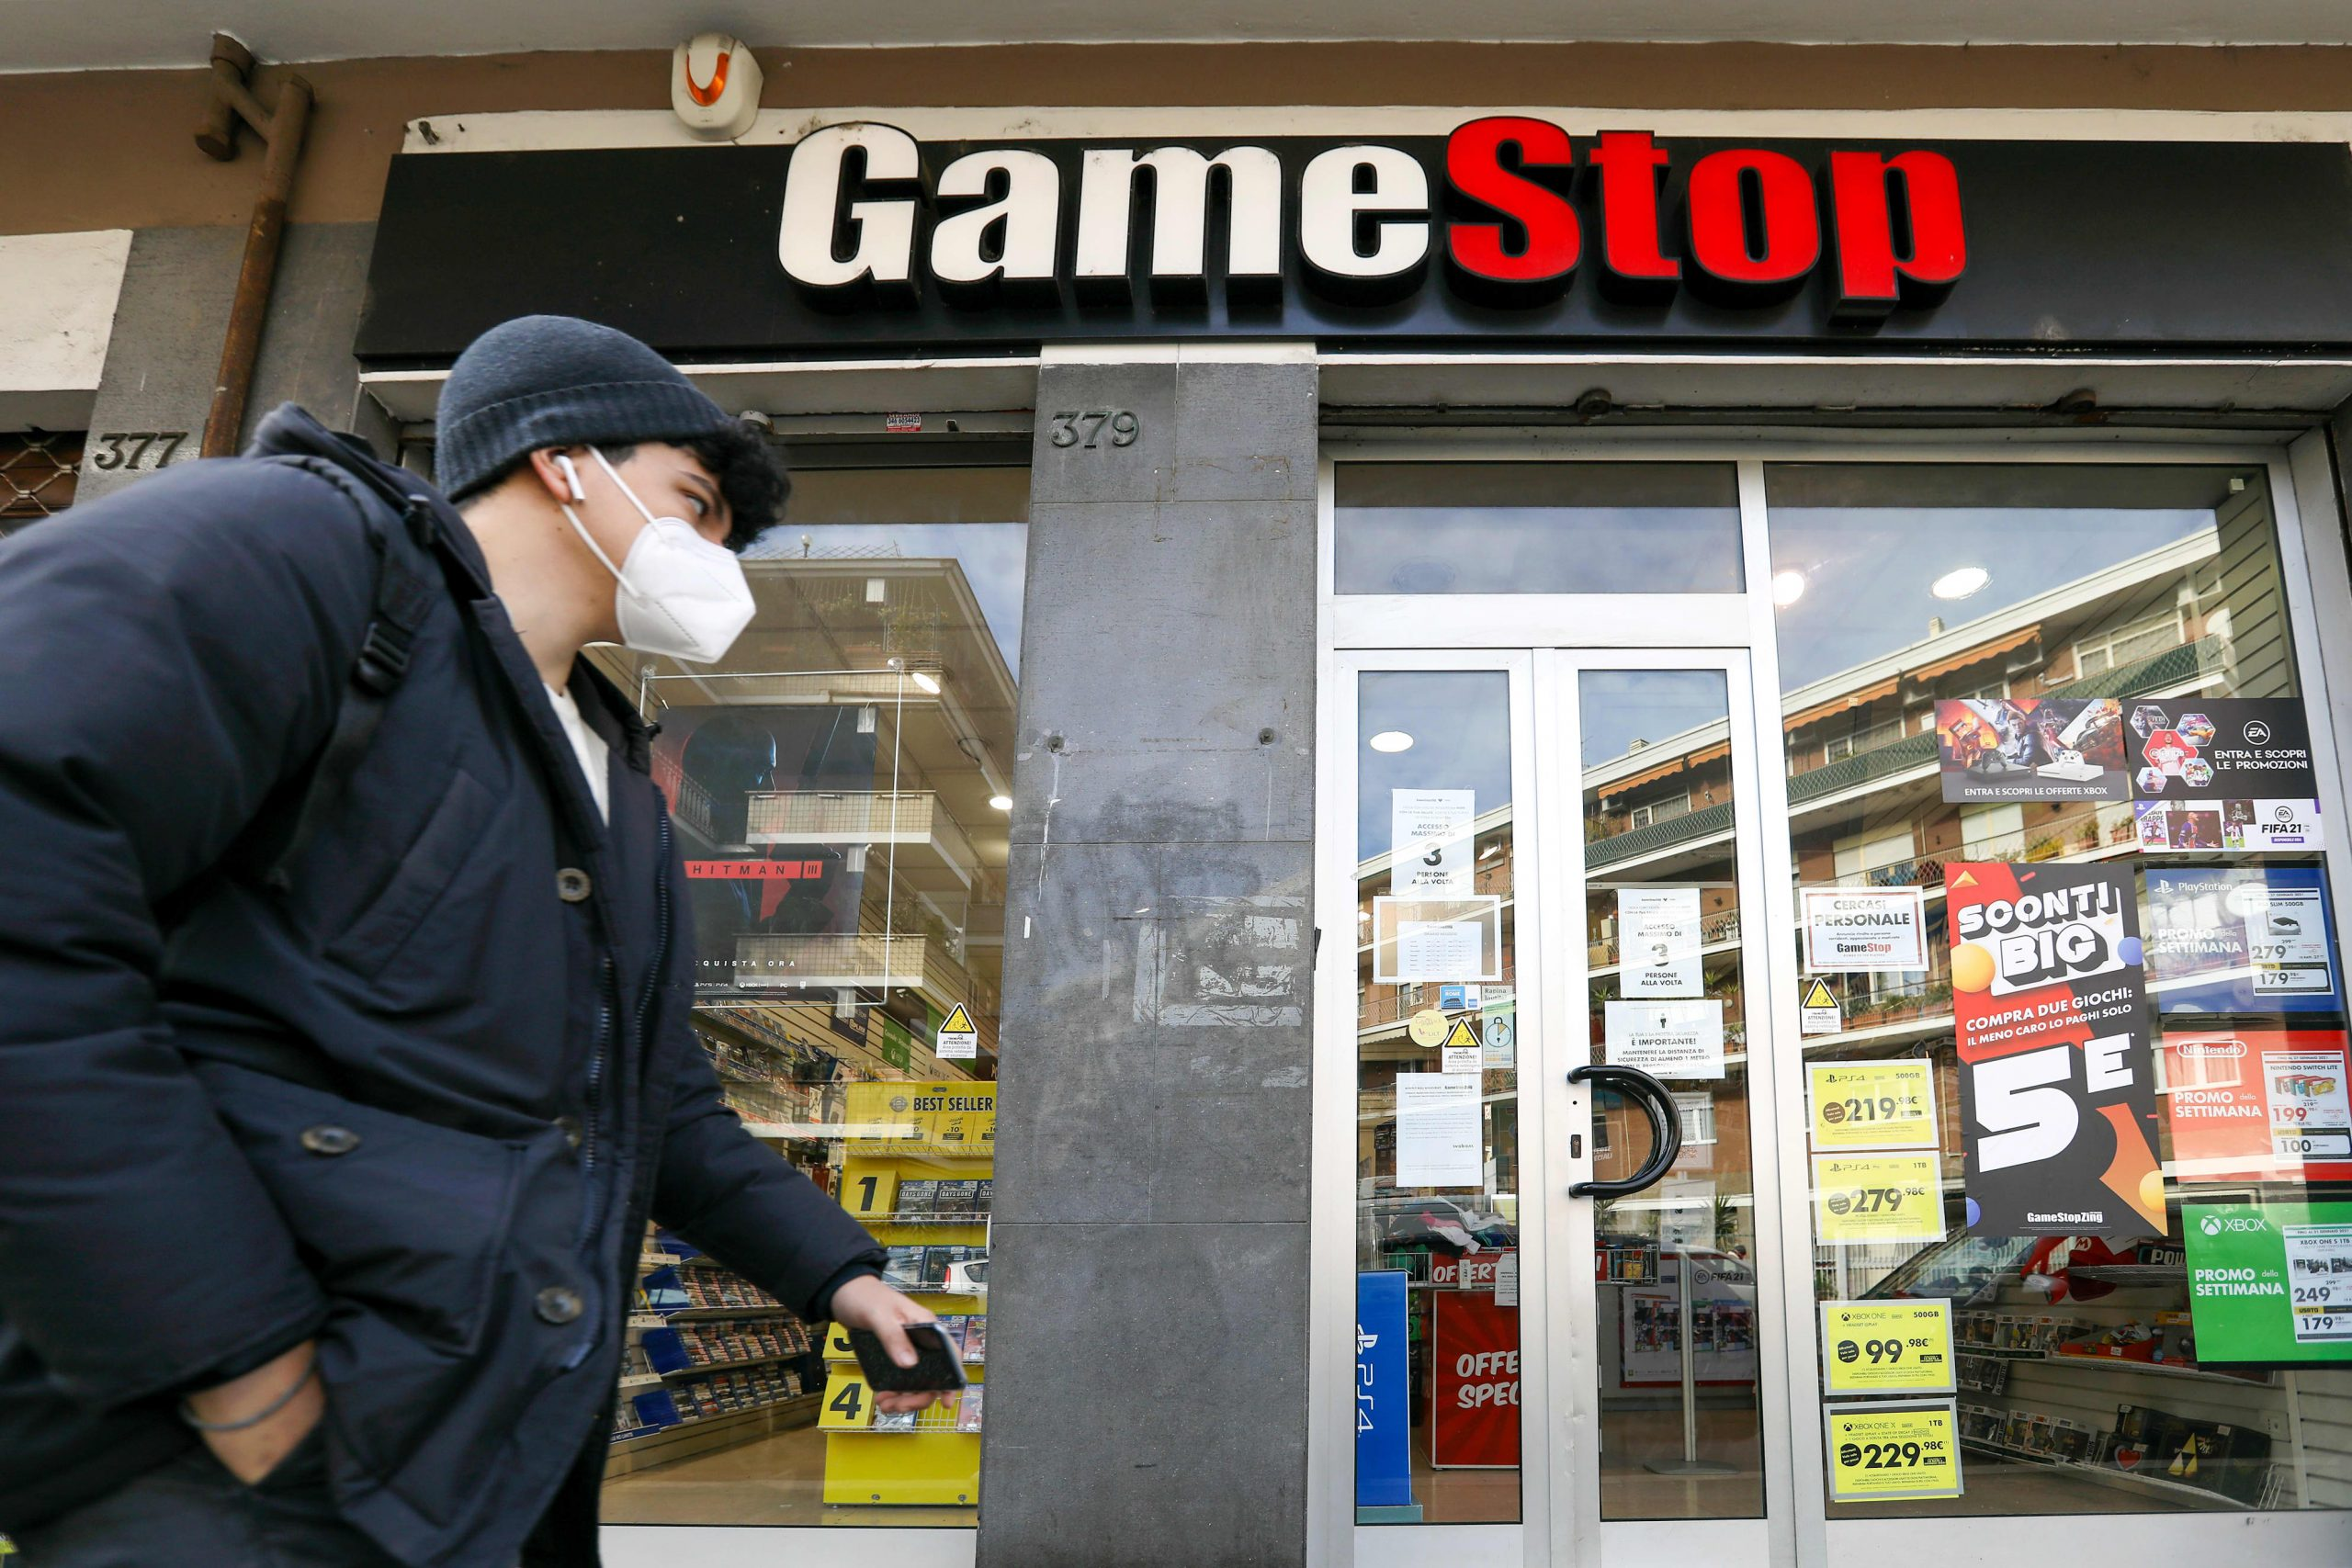 amc-gamestop-share-offerings-are-longterm-positives